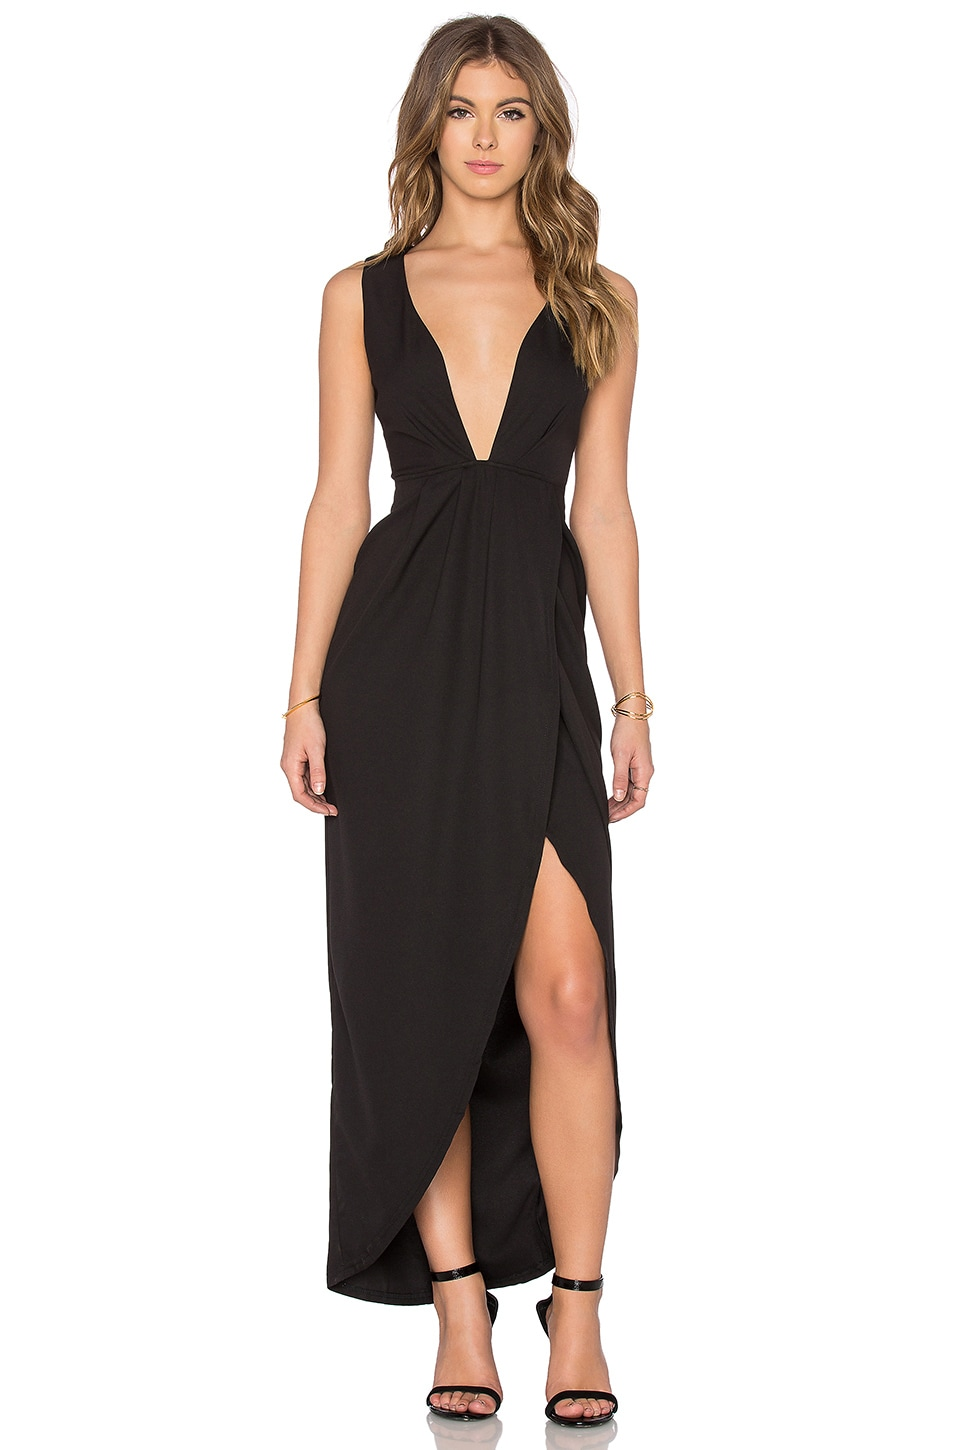 x Love Indie Lina Cross Front Maxi Dress